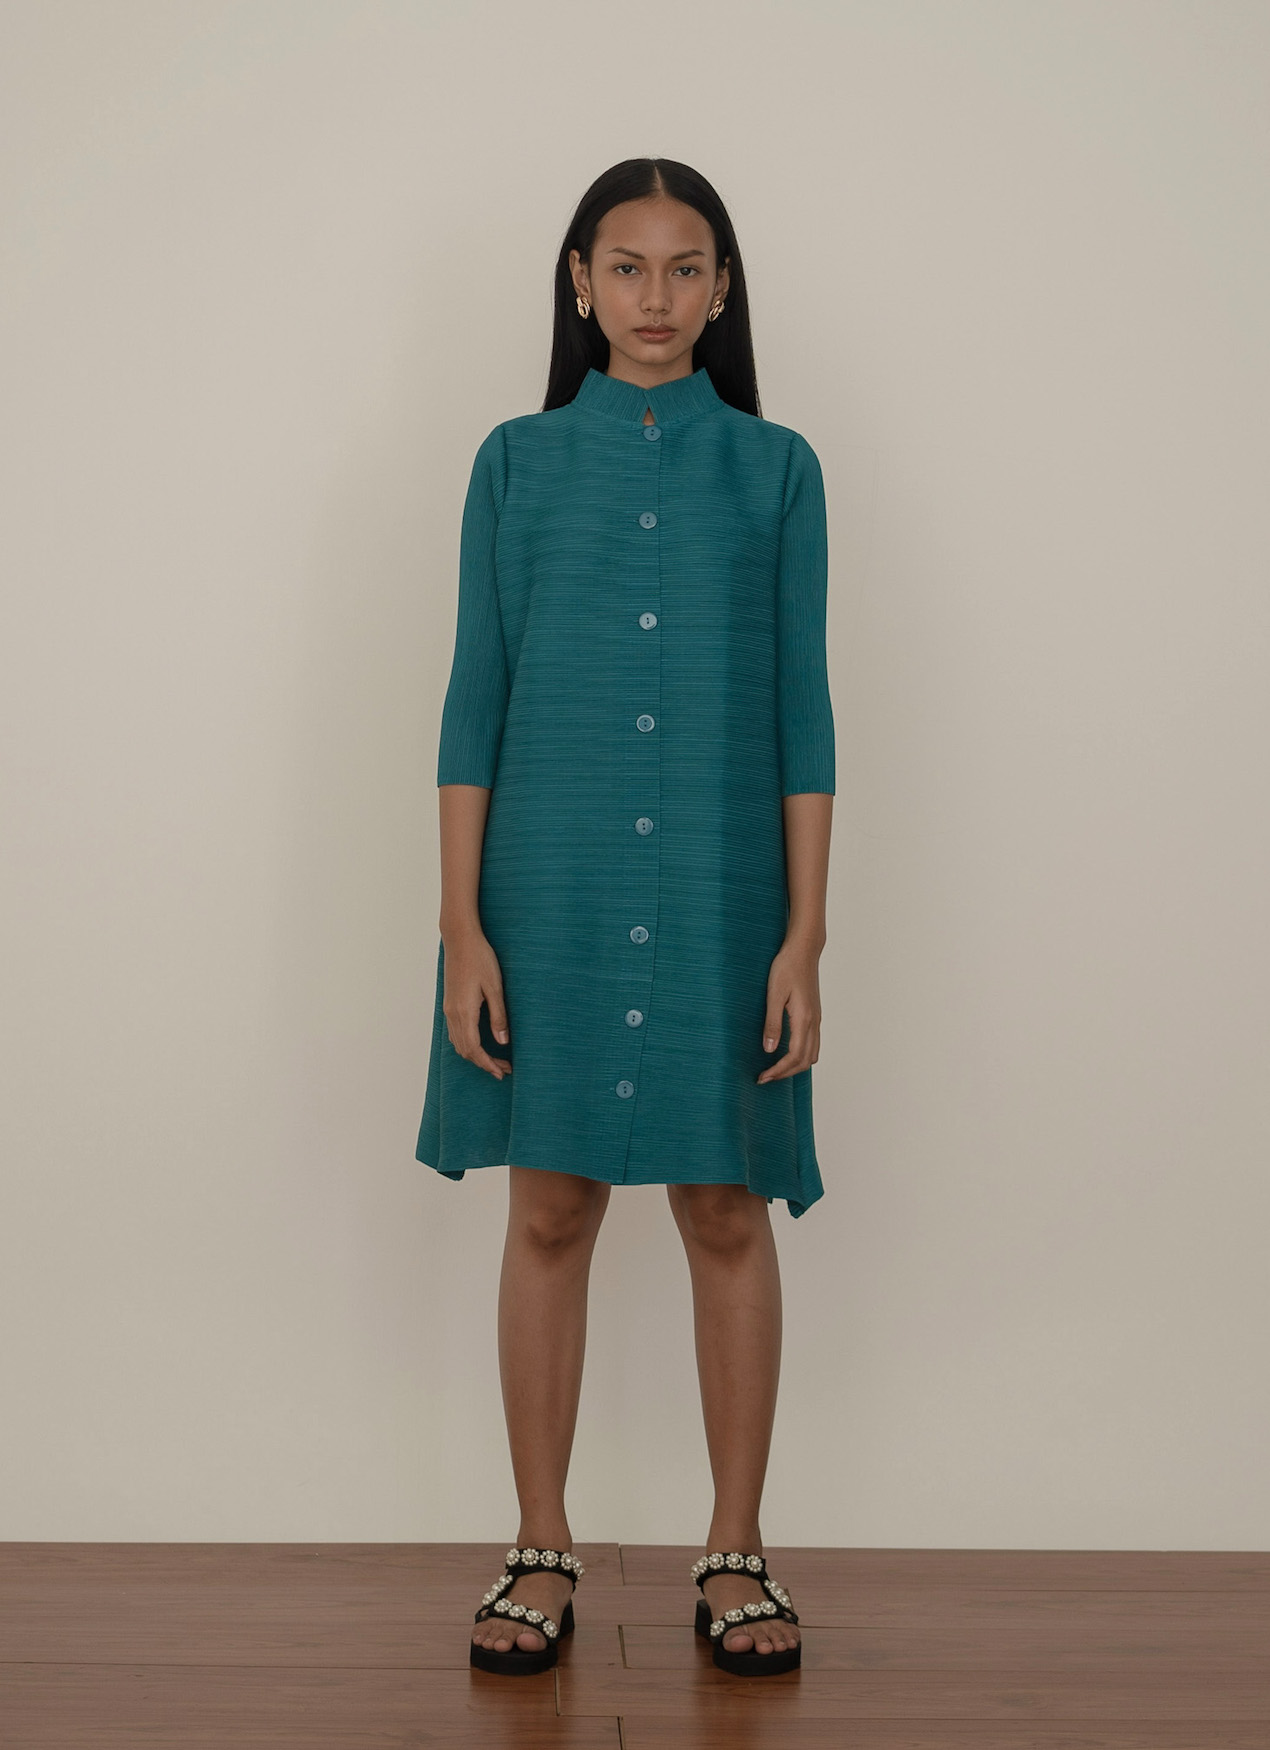 Orgeo Official Orge Dress - Tosca